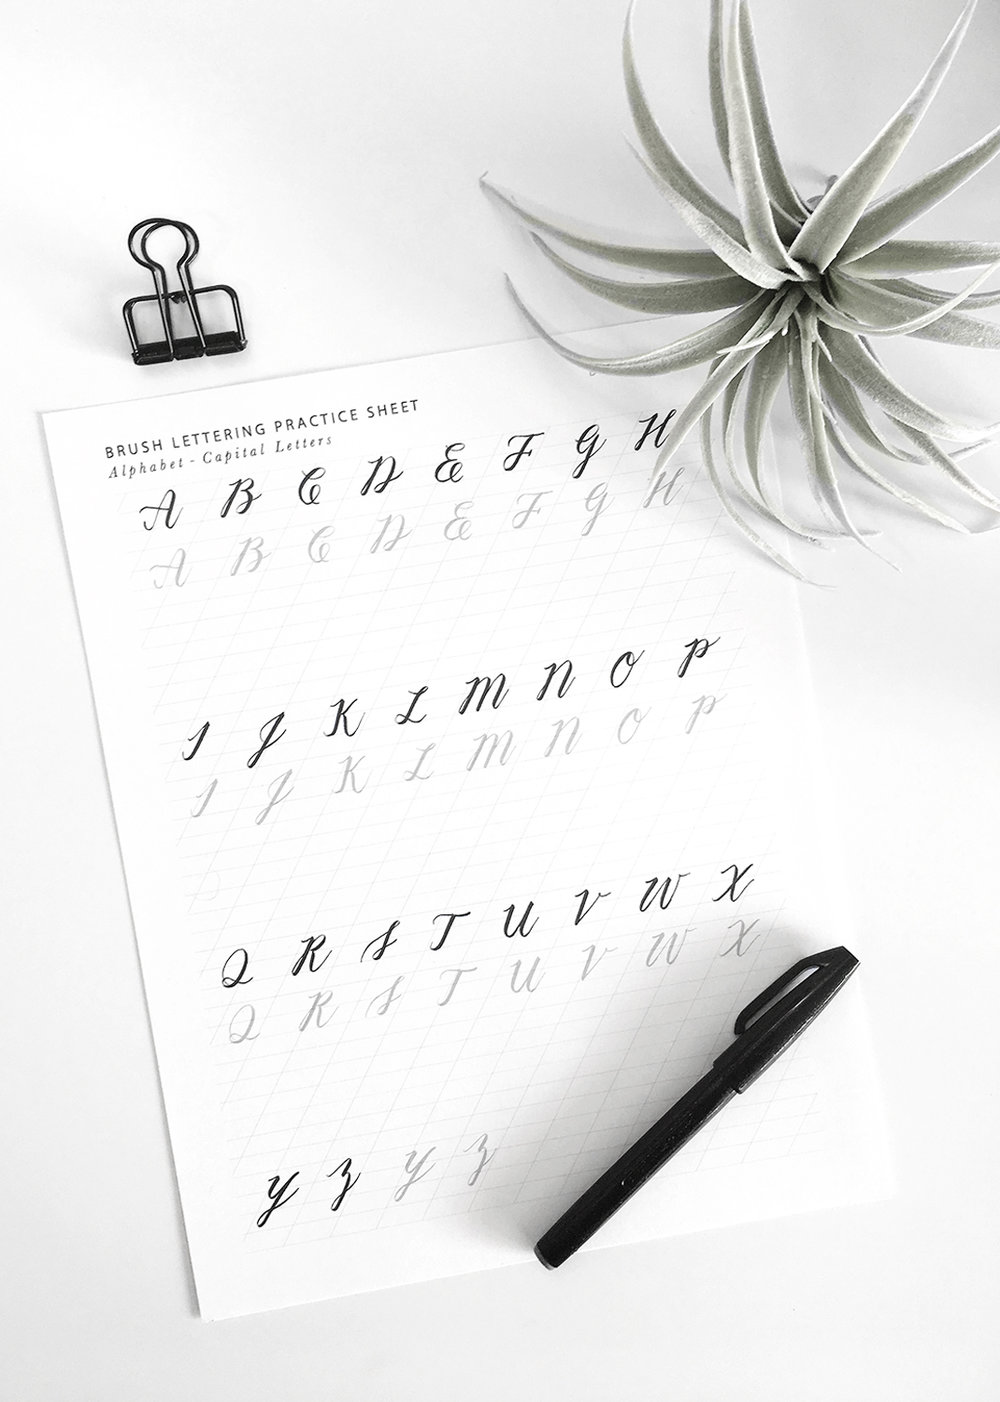 Free Brush Lettering Practice Sheet - Capital Letters | @DrawntoDIY